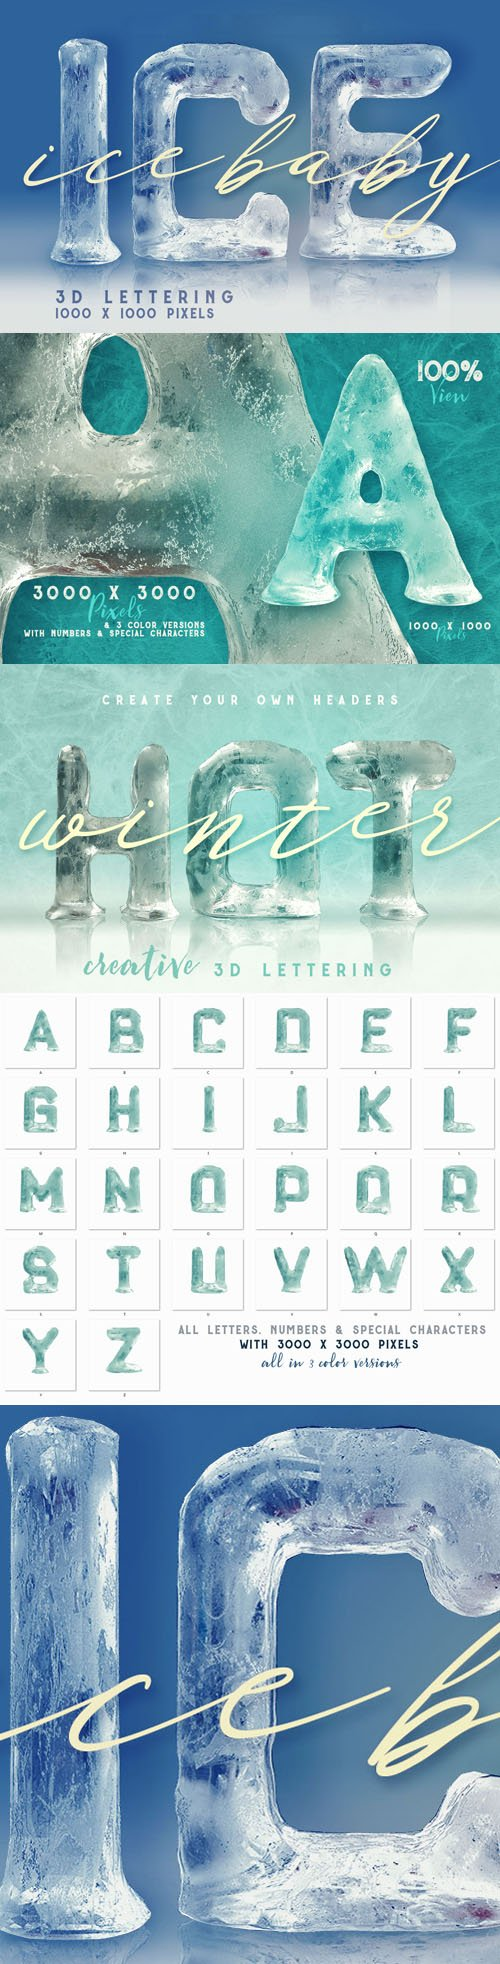 Ice Baby 3D Lettering Renders A-Z